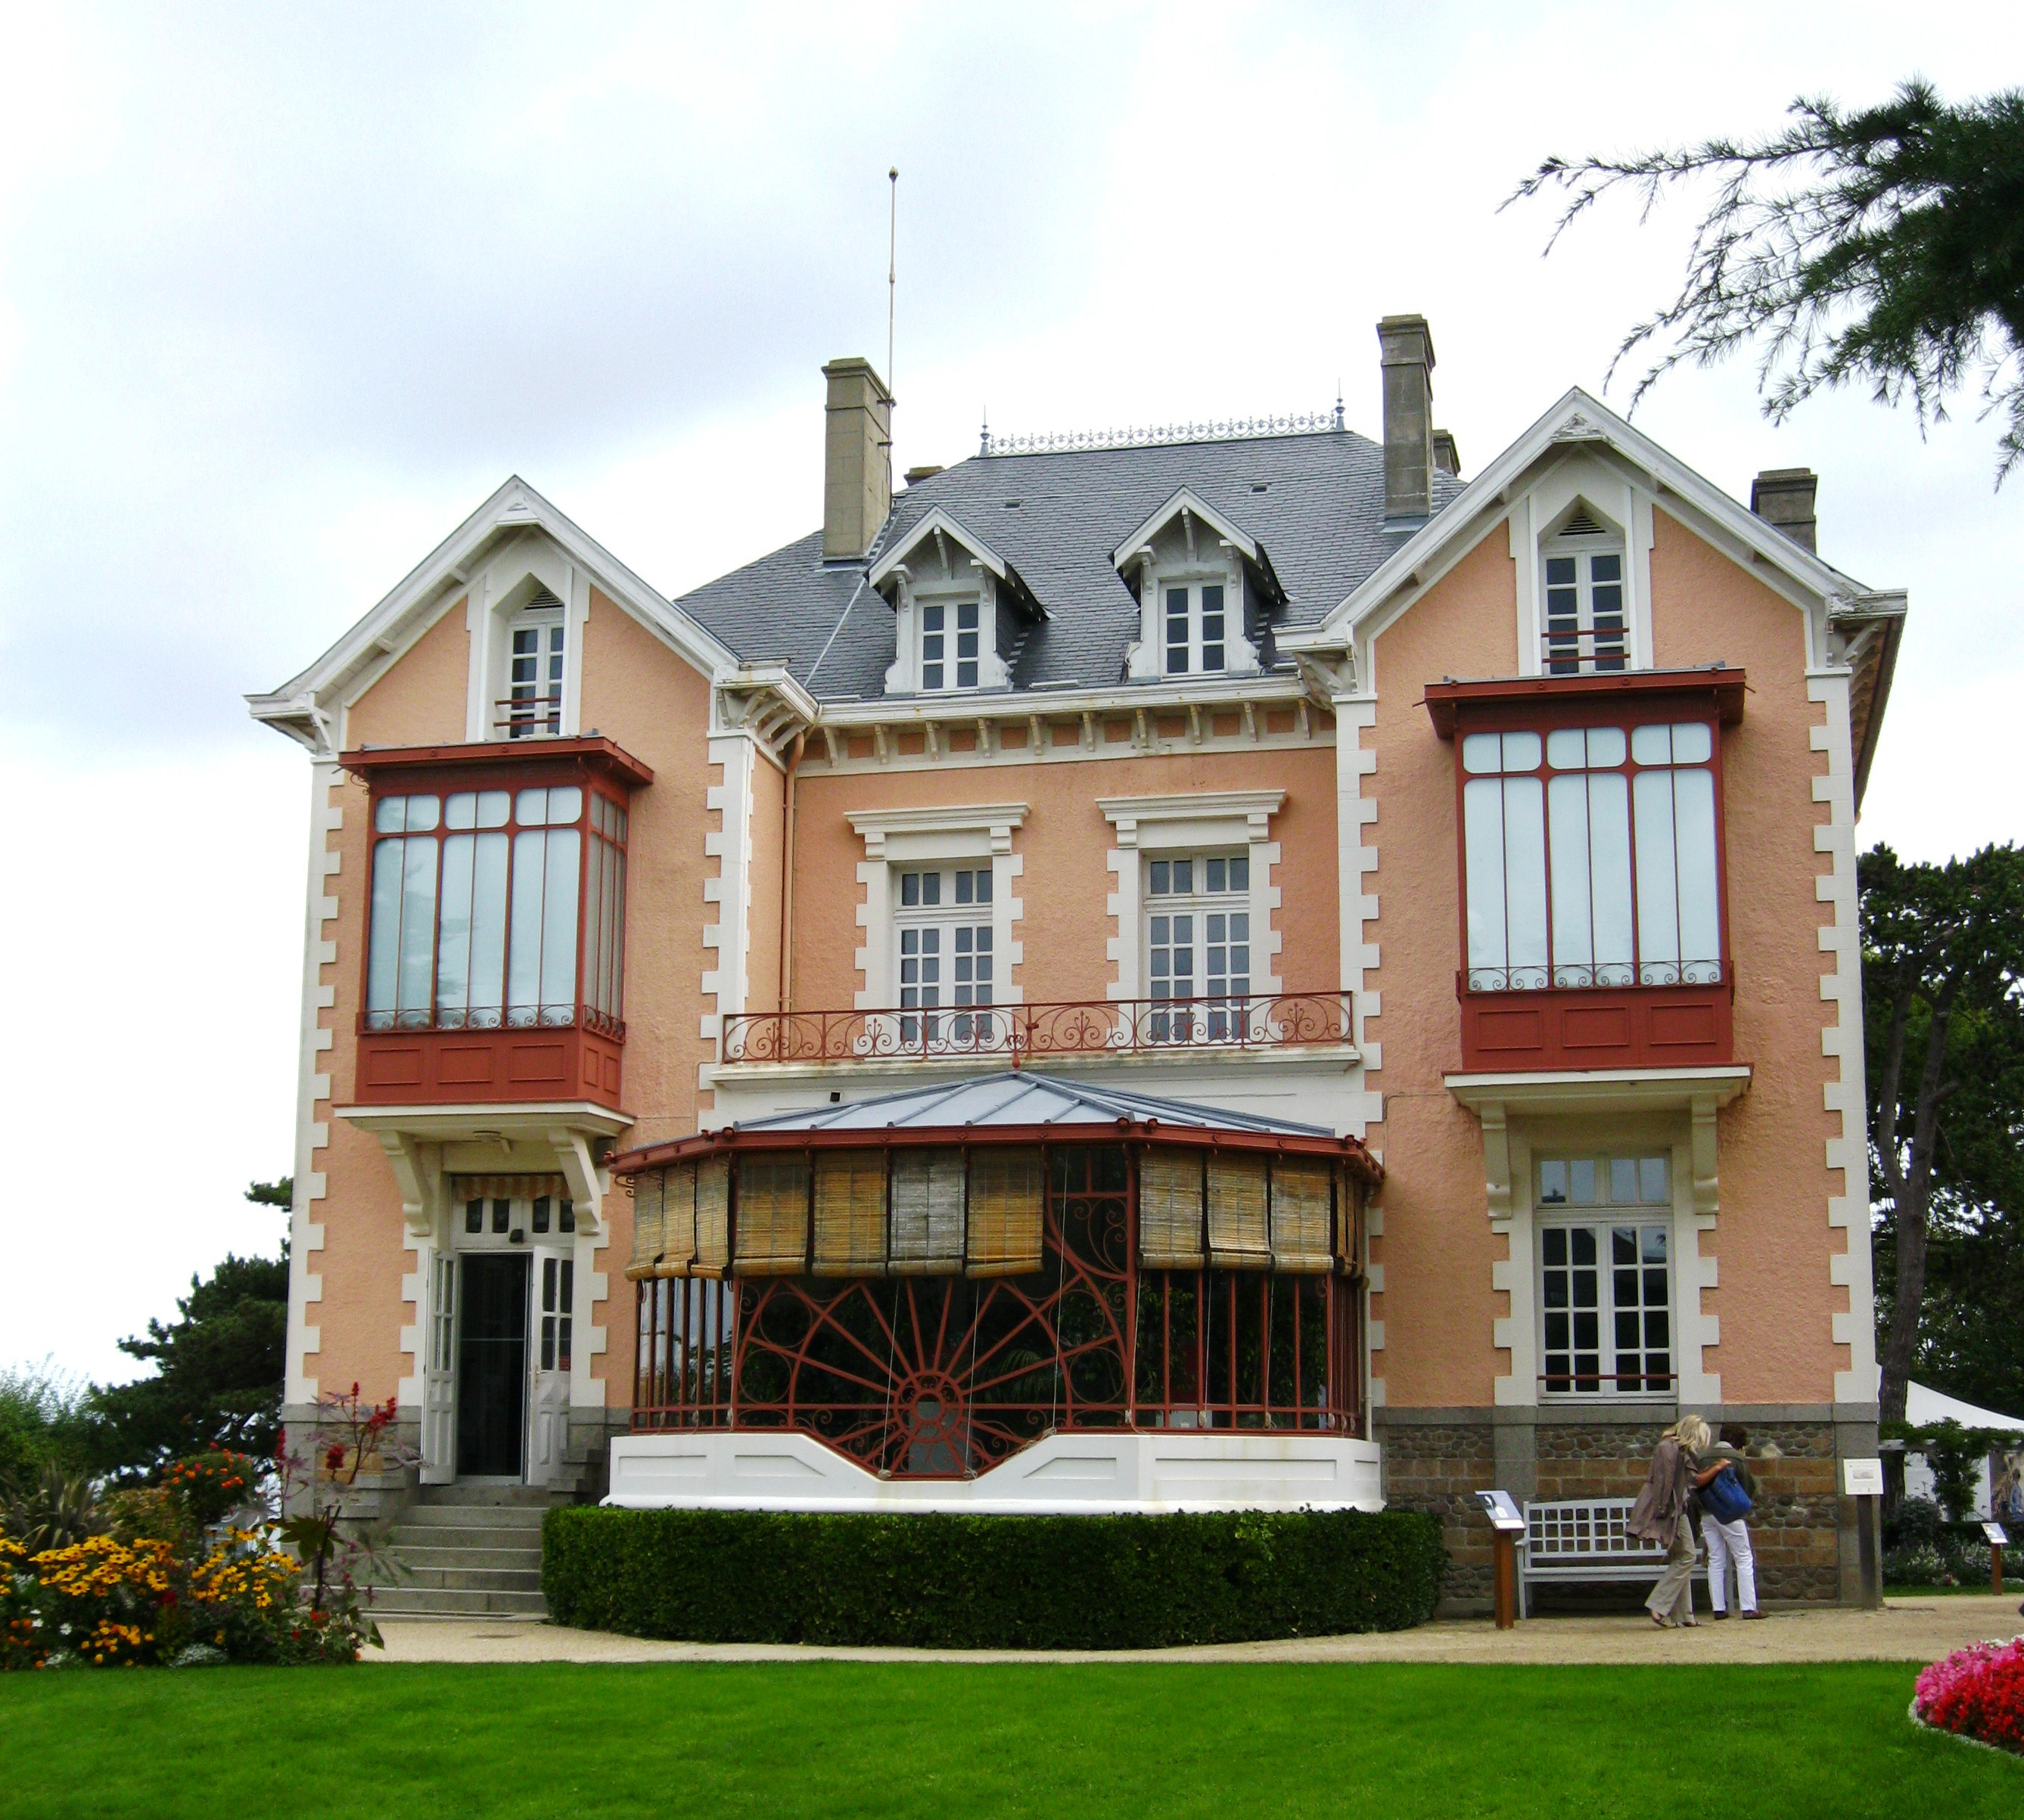 Jardin Dior Granville More On Christian Dior S Ball And His Childhood Home Ritournelle